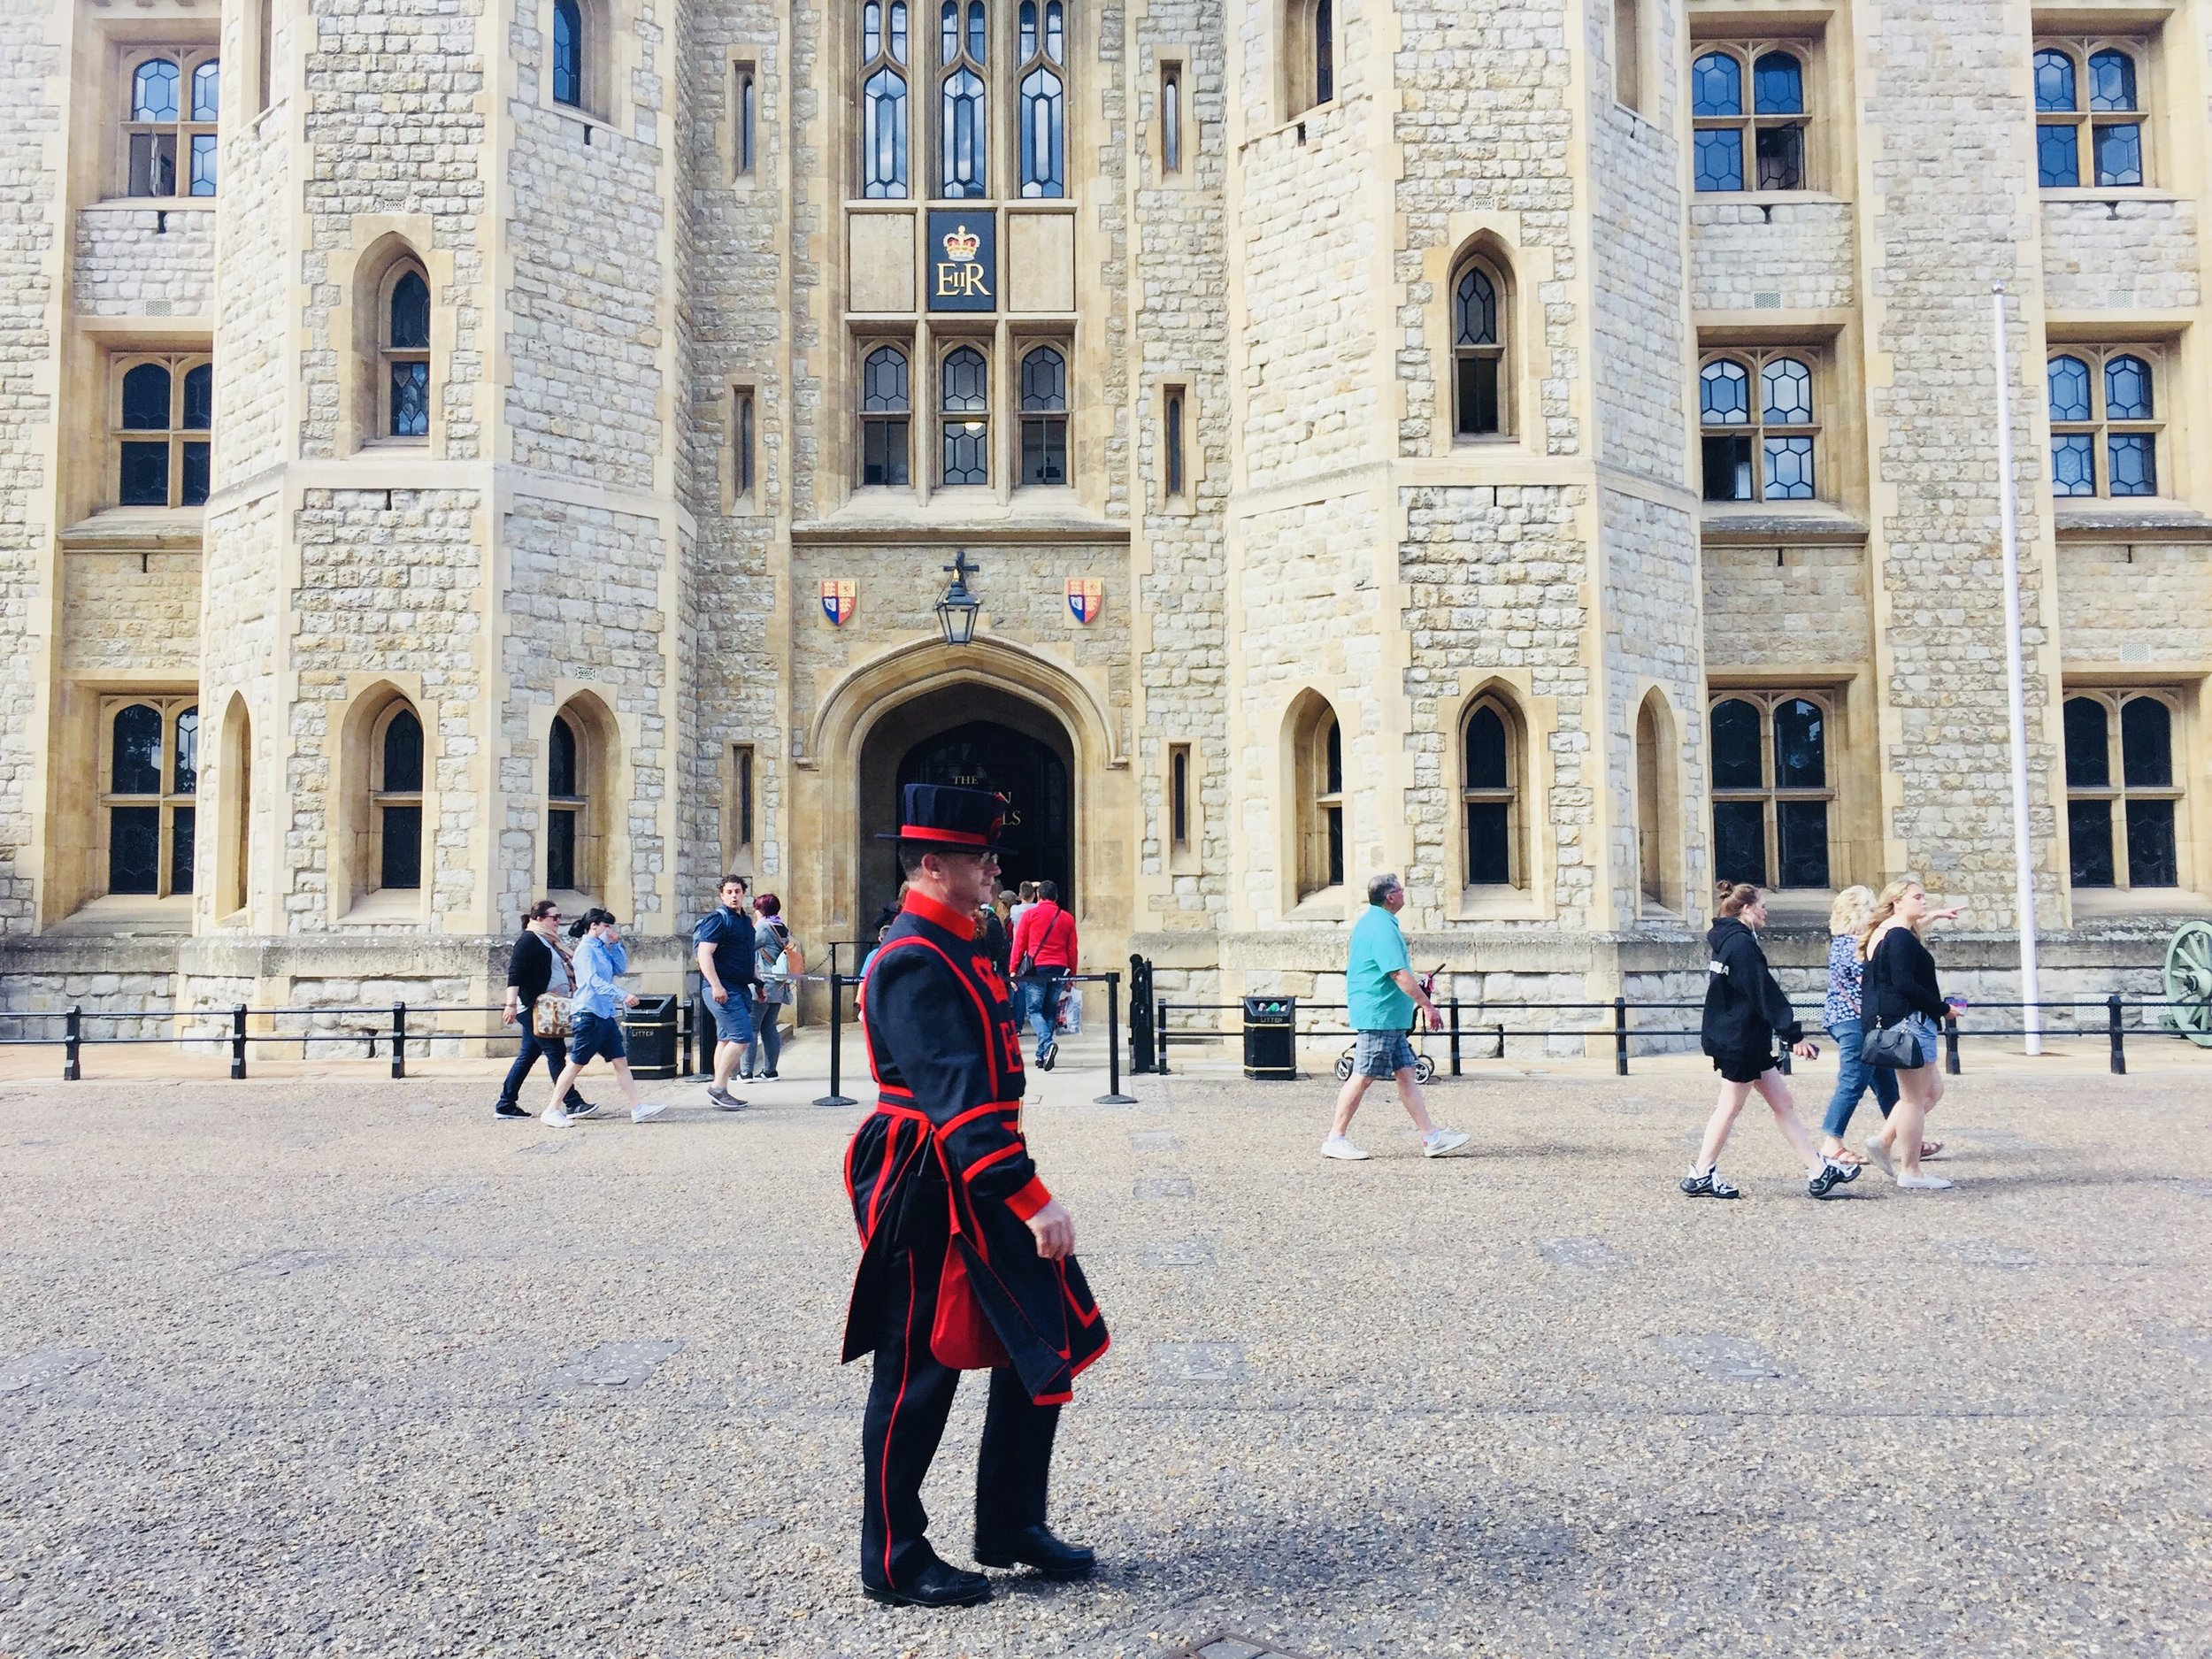 travel guide to london: tower of london